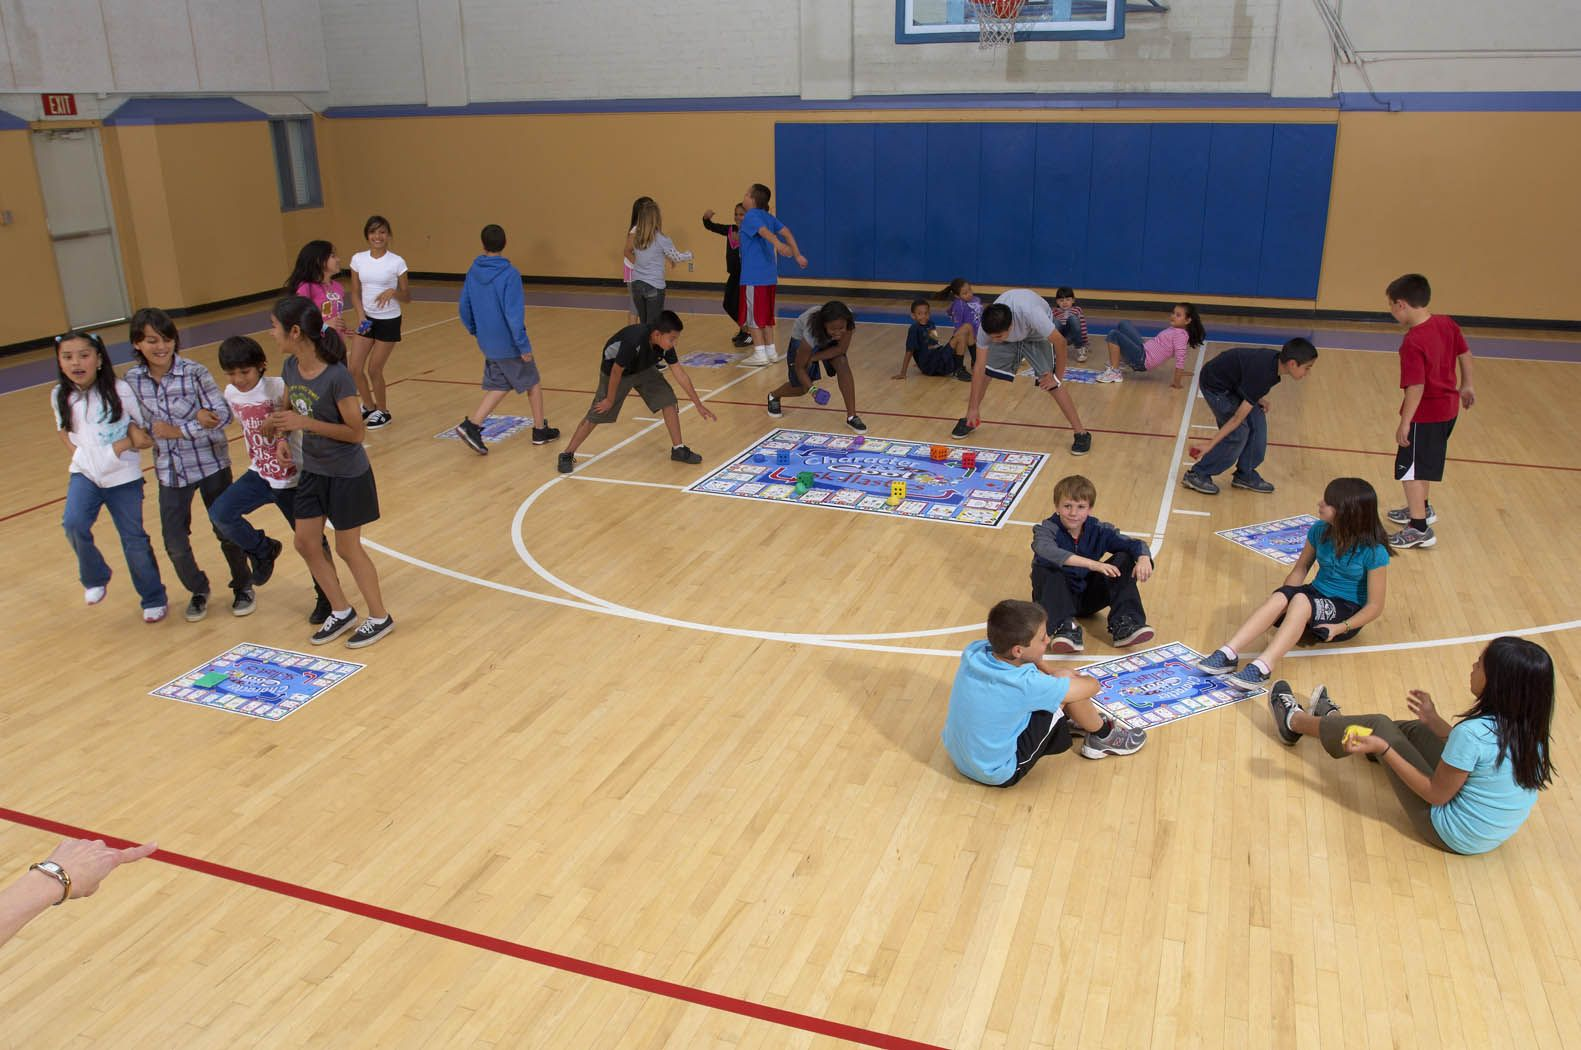 Mrgym Good Website Dedicated To Physical Education Lots Of Ideas For Indoor Outdoor Games